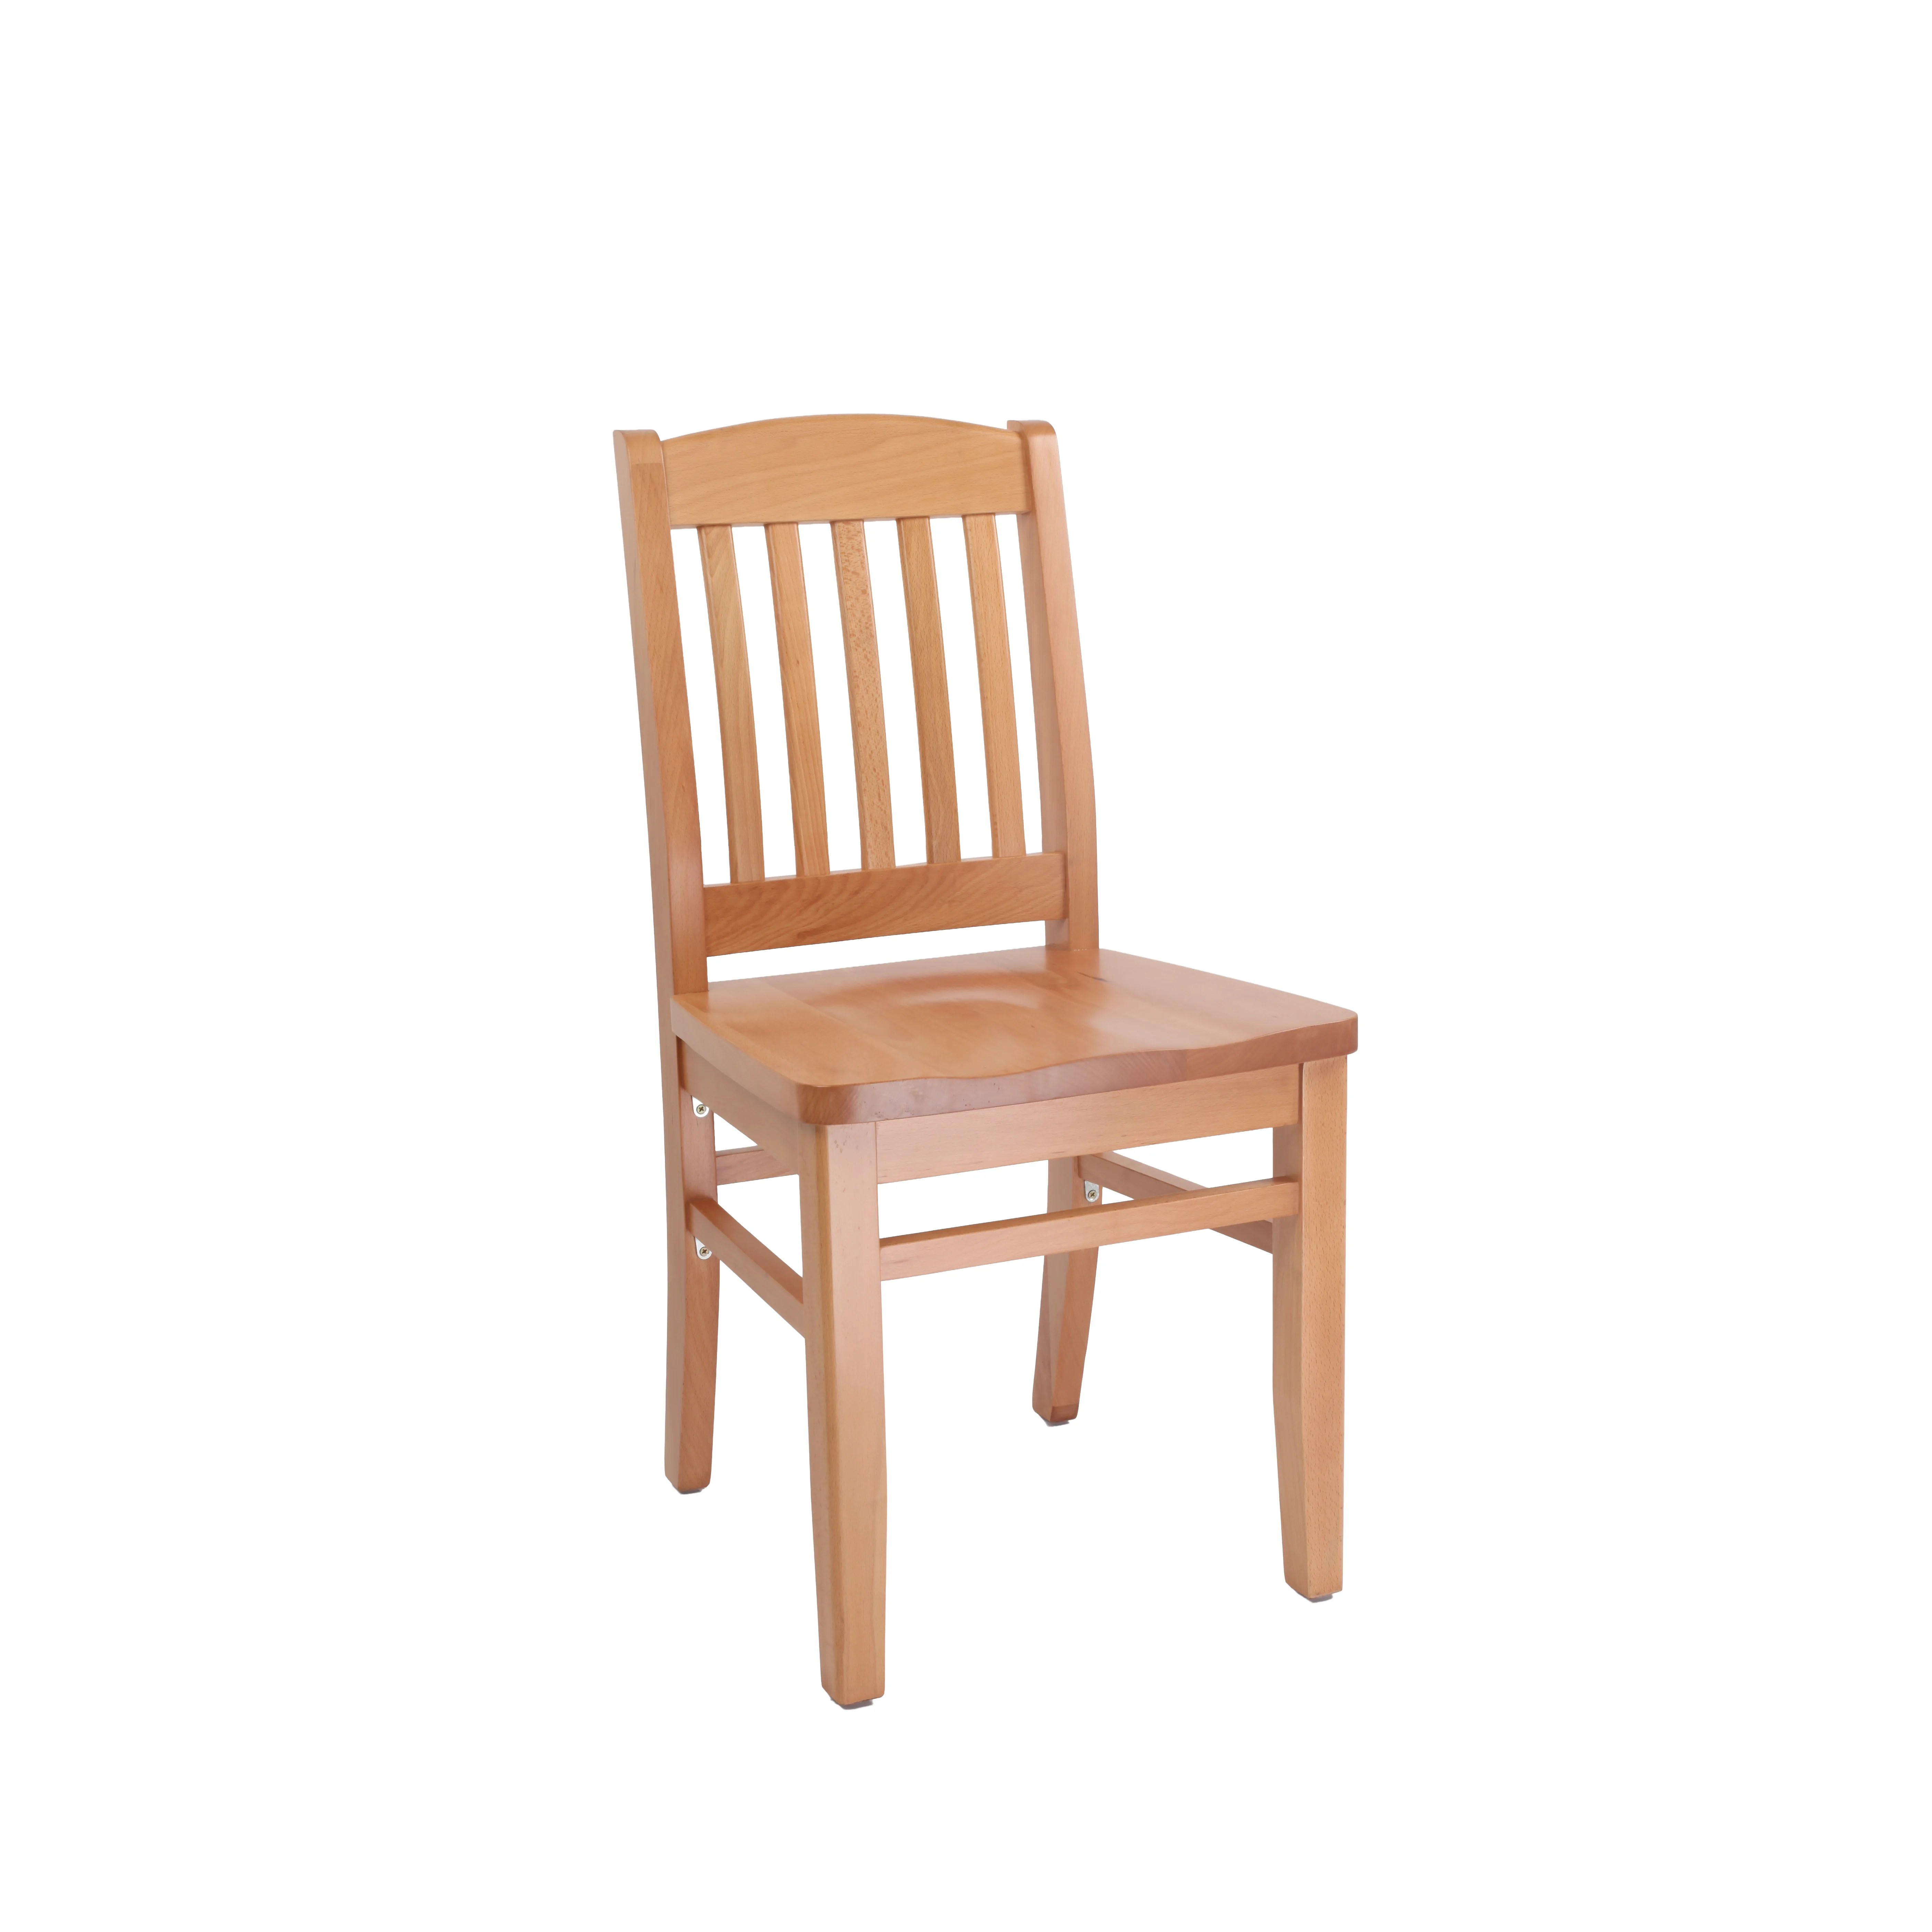 mission shaker kitchen dining chairs c a~ kitchen chairs with arms QUICK VIEW Bulldog Chair